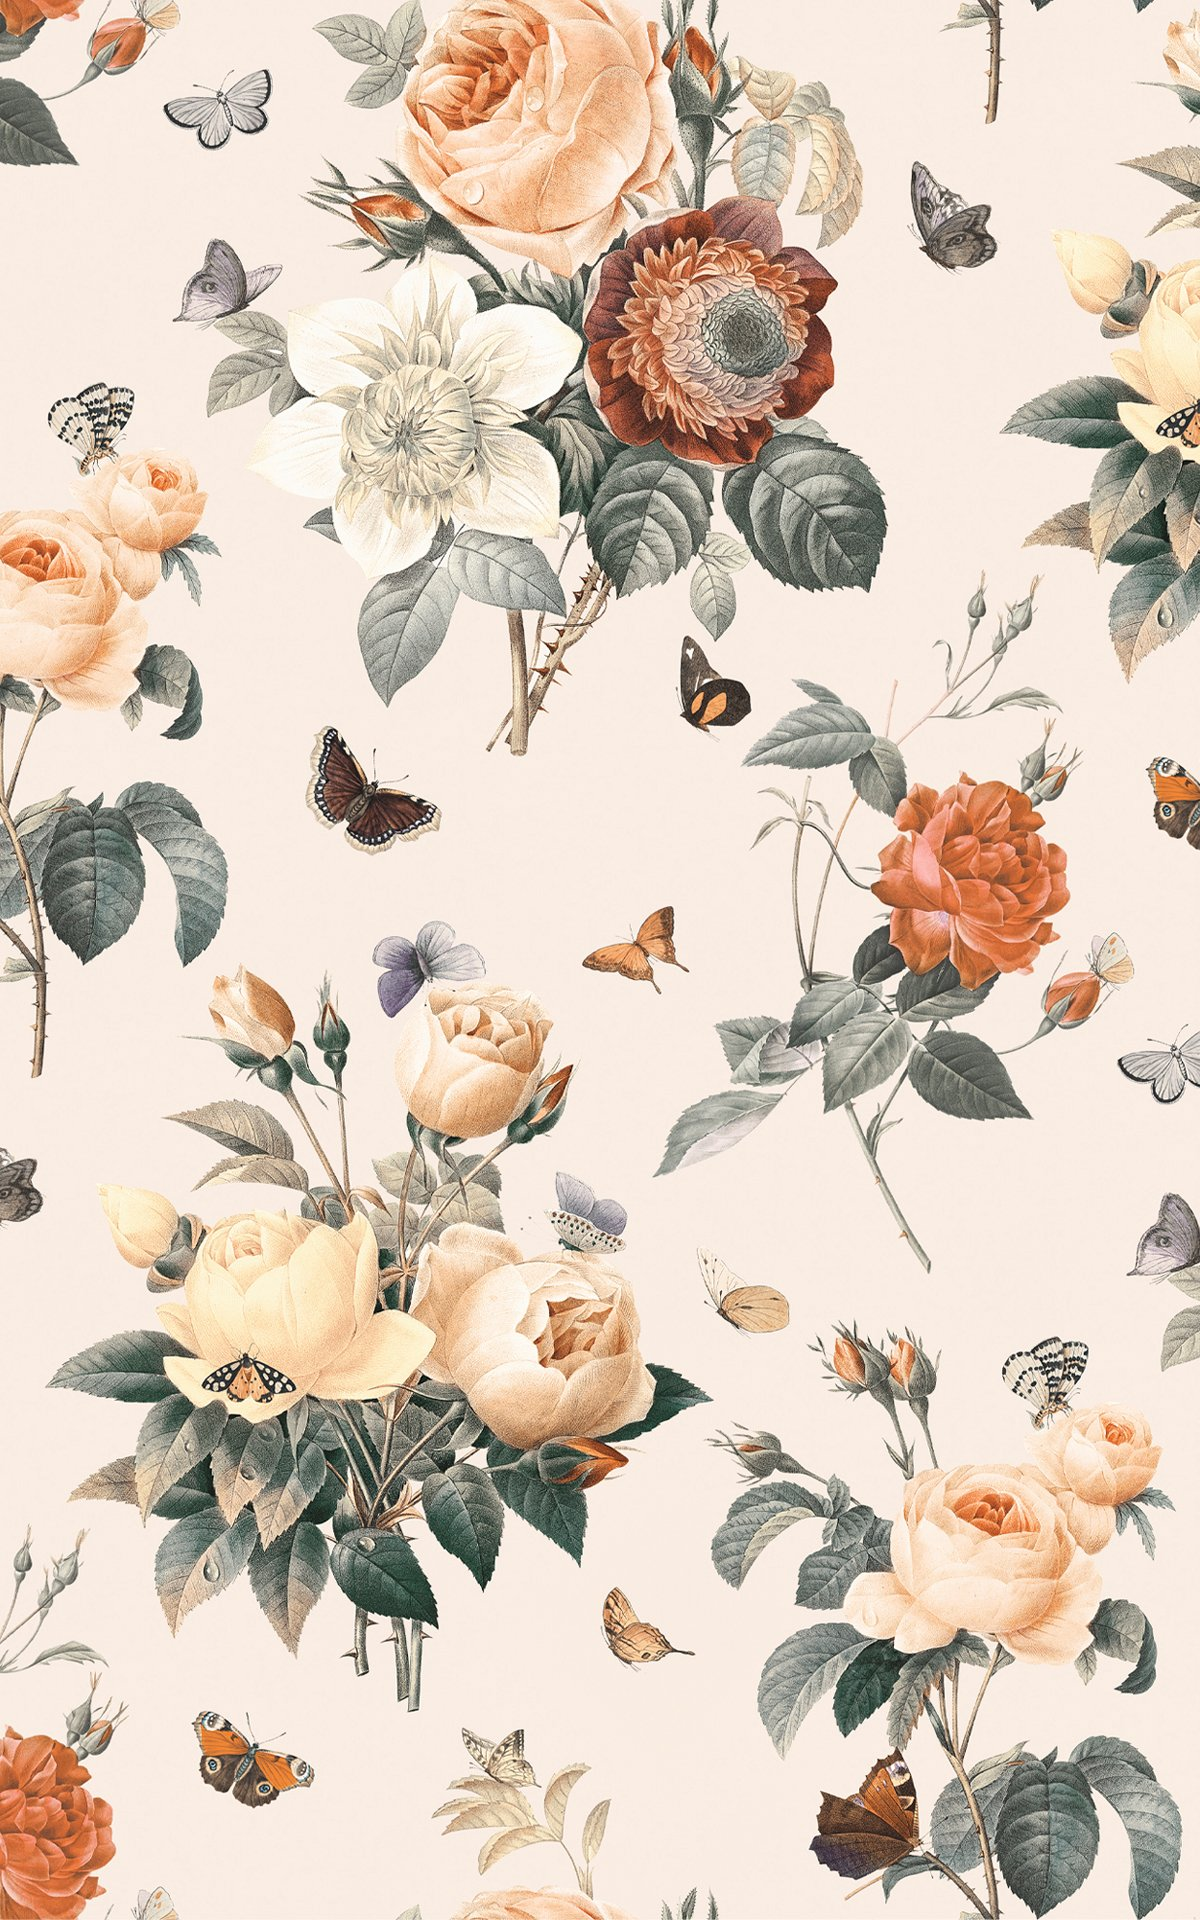 Cream & Orange Vintage Floral Butterfly Lovely Wallpaper Mural Product Image